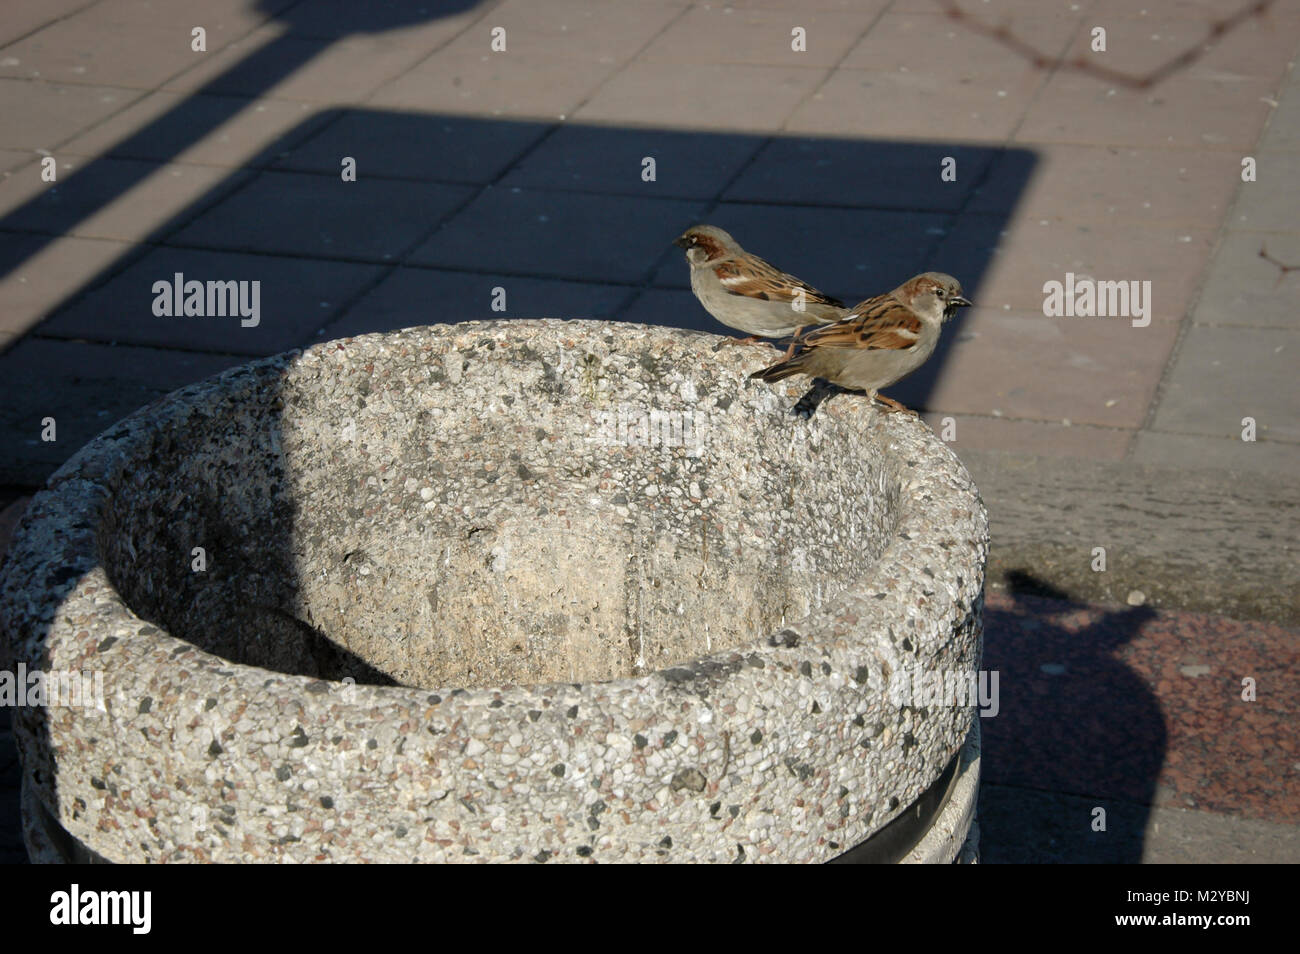 two sparrows on stone trash can on street, urban scene with shadows - Stock Image